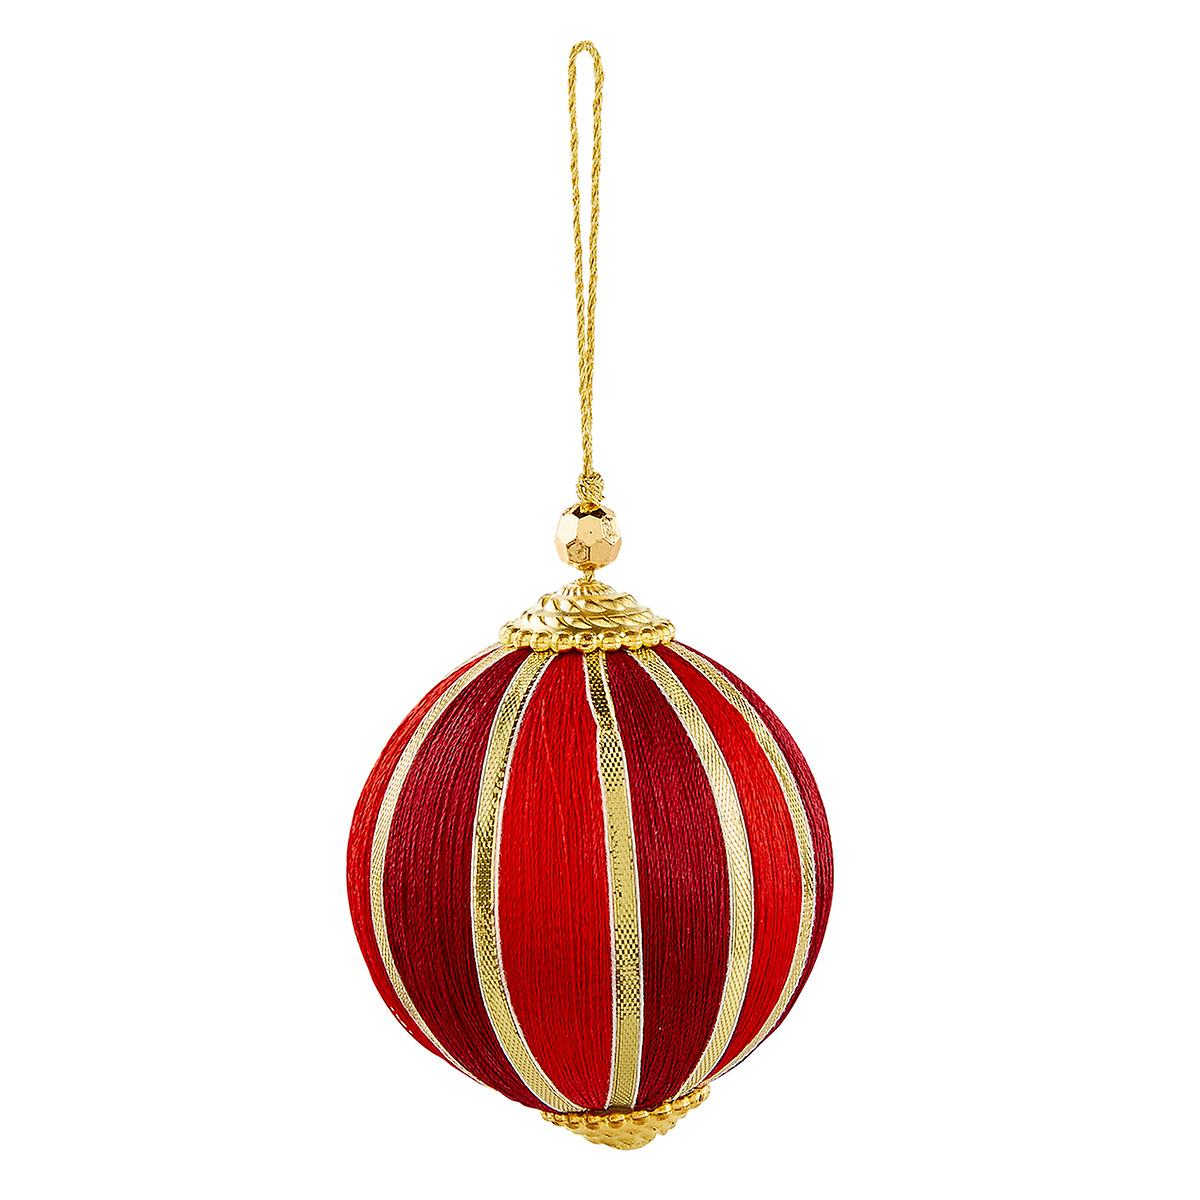 Red & Gold Ball Tie-On Ornament